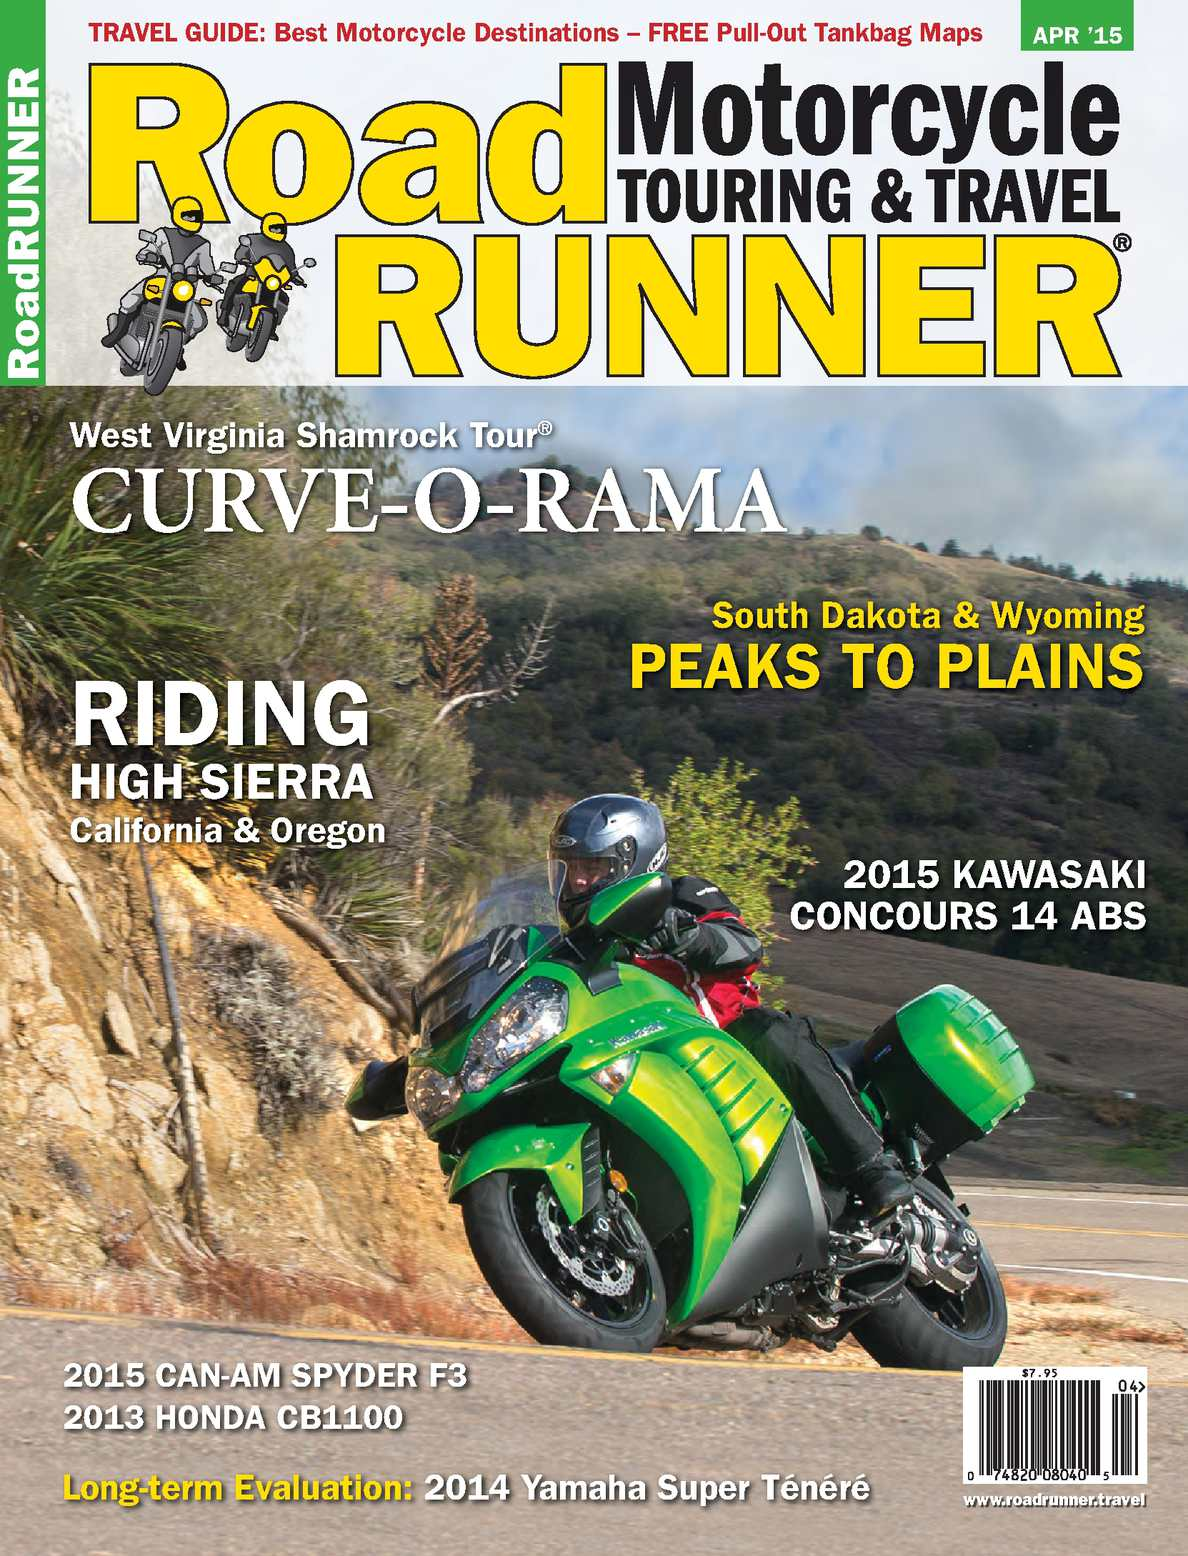 Calamo Roadrunner Motorcycle Touring Travel March April 2015 Cog Triumph Daytona 600 Charging And Starting System Circuit